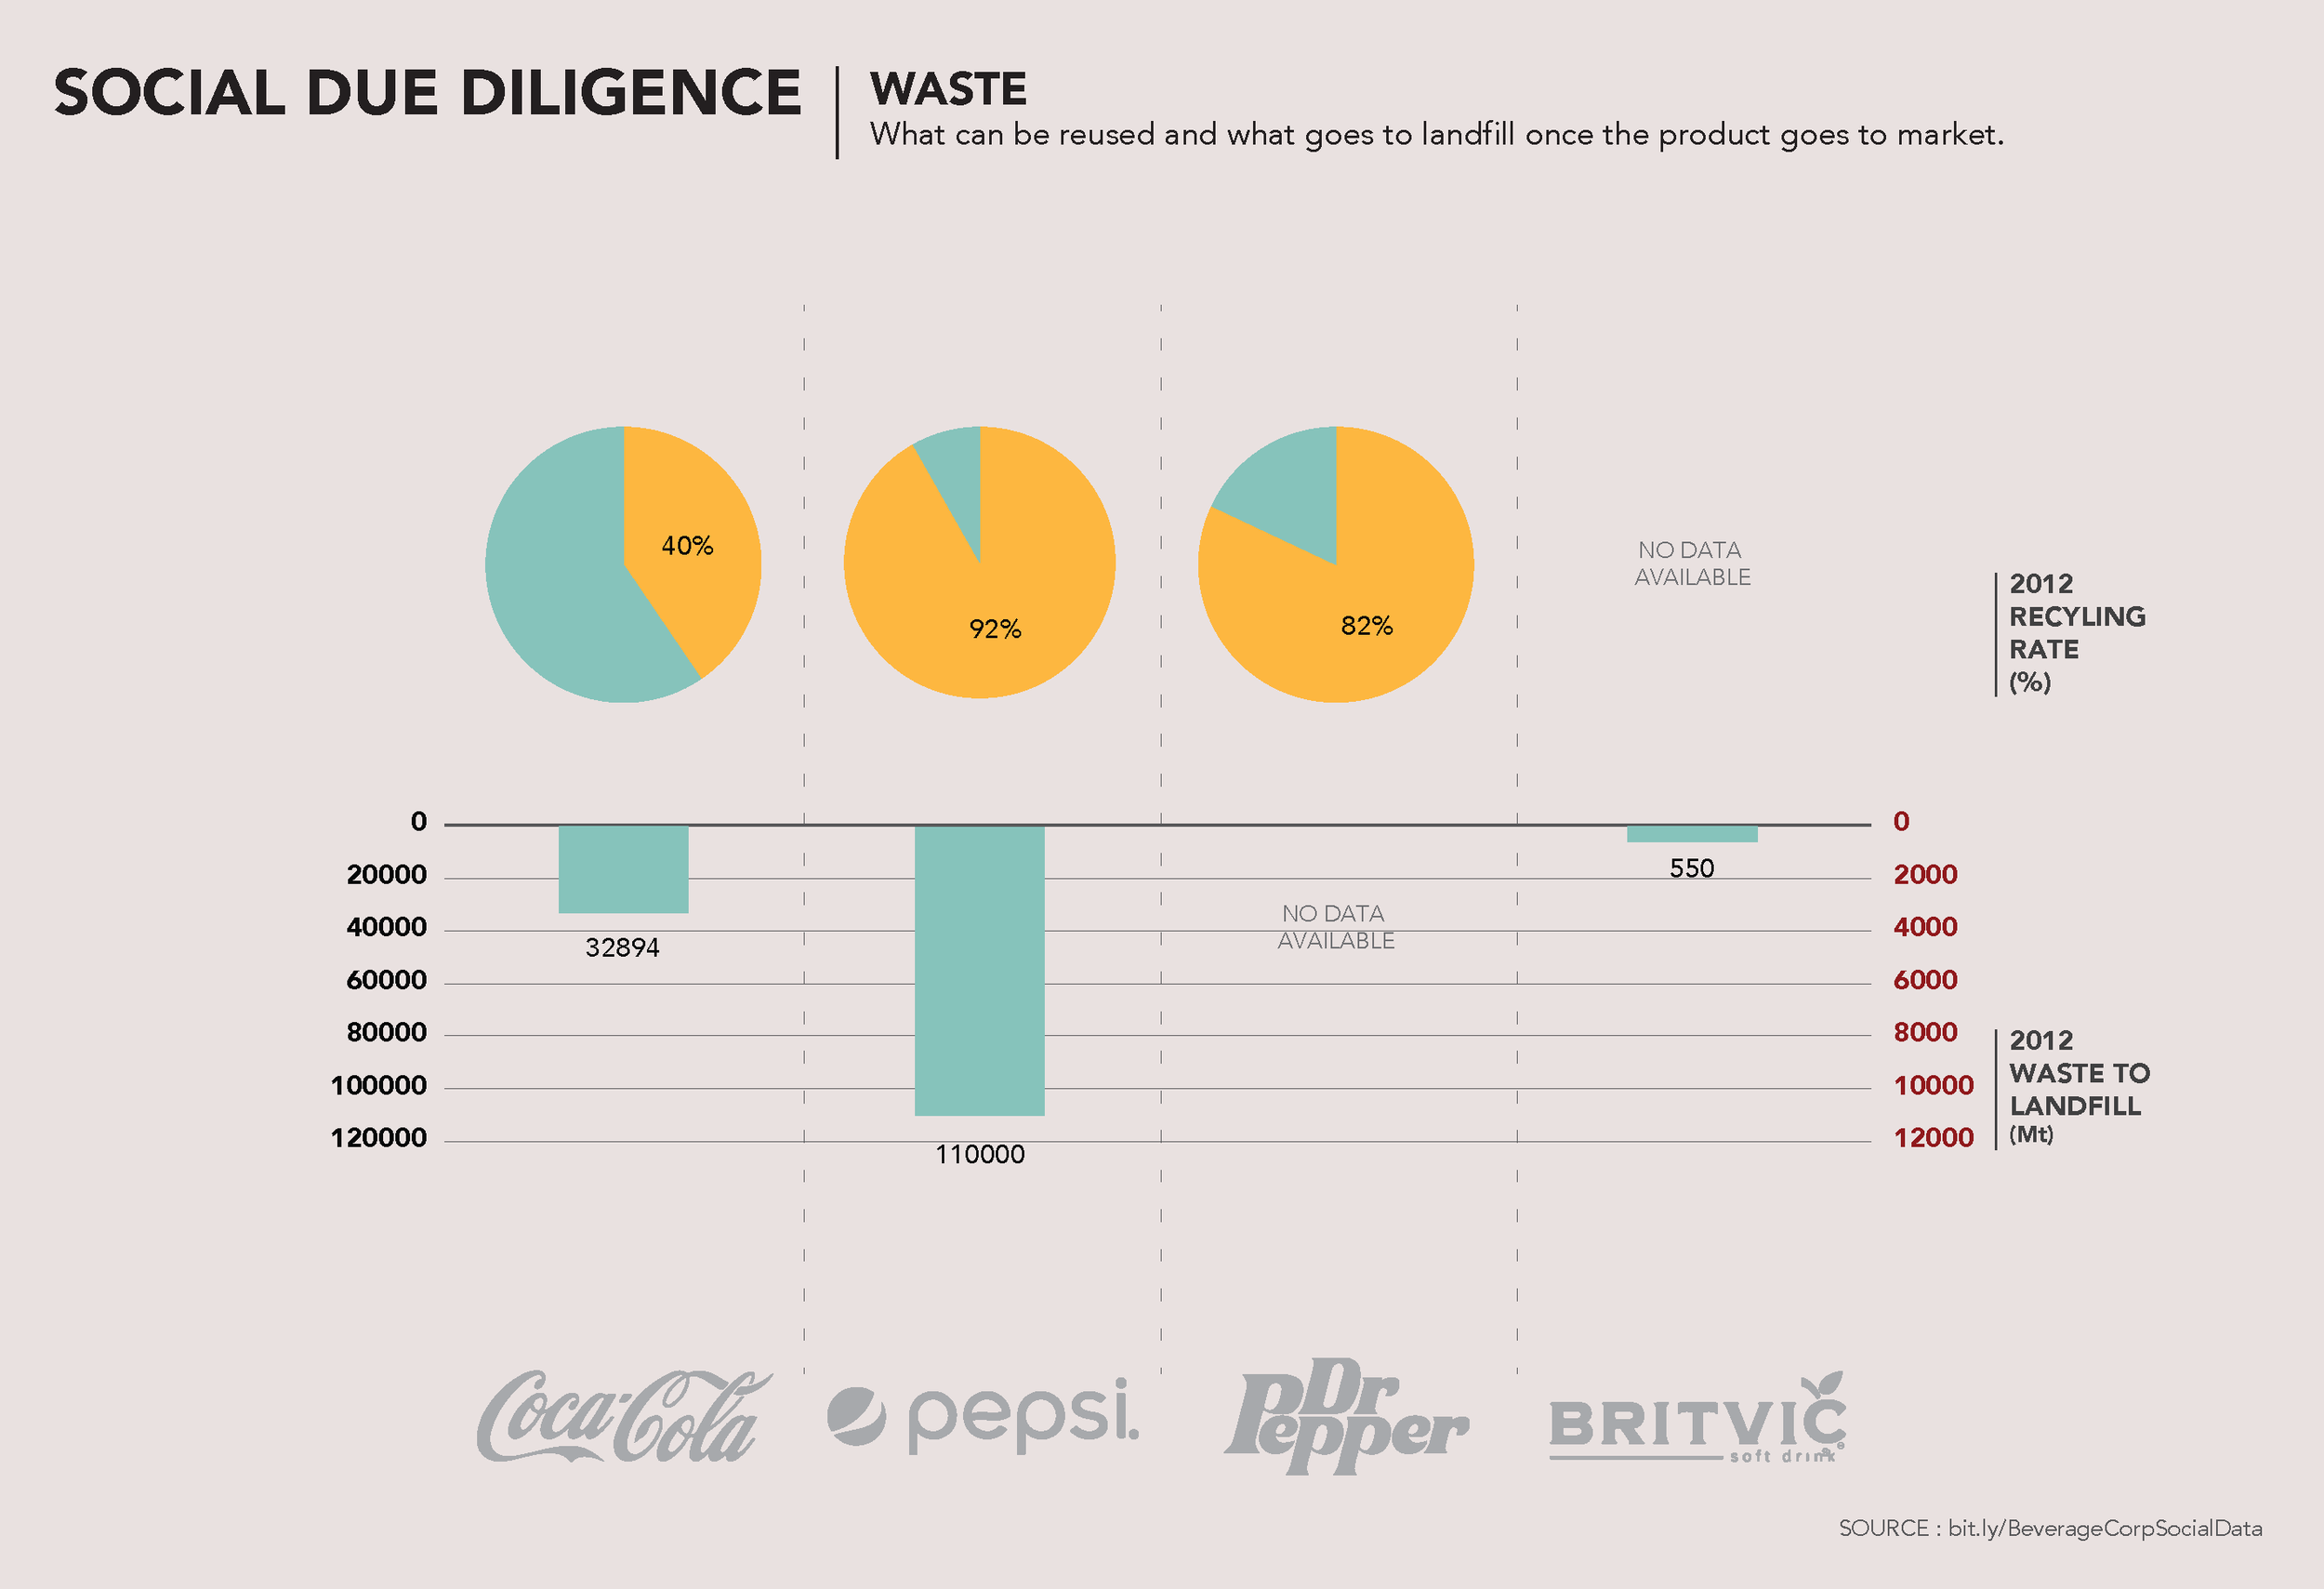 We then decided to look at what comes out of the backend of the manufacturing process.     Here we look at the waste produced for each company.    You can see how much of their waste is recycled, and what ultimately makes it to the landfill    You can see the huge difference between Coca-Cola and Pepsi    And while there is data missing for Dr Pepper/Snapple and Britvic, you can get a sense of the recycling rate at Dr Pepper Snapple, and the rather small amount of waste set to landfill for Britvic.